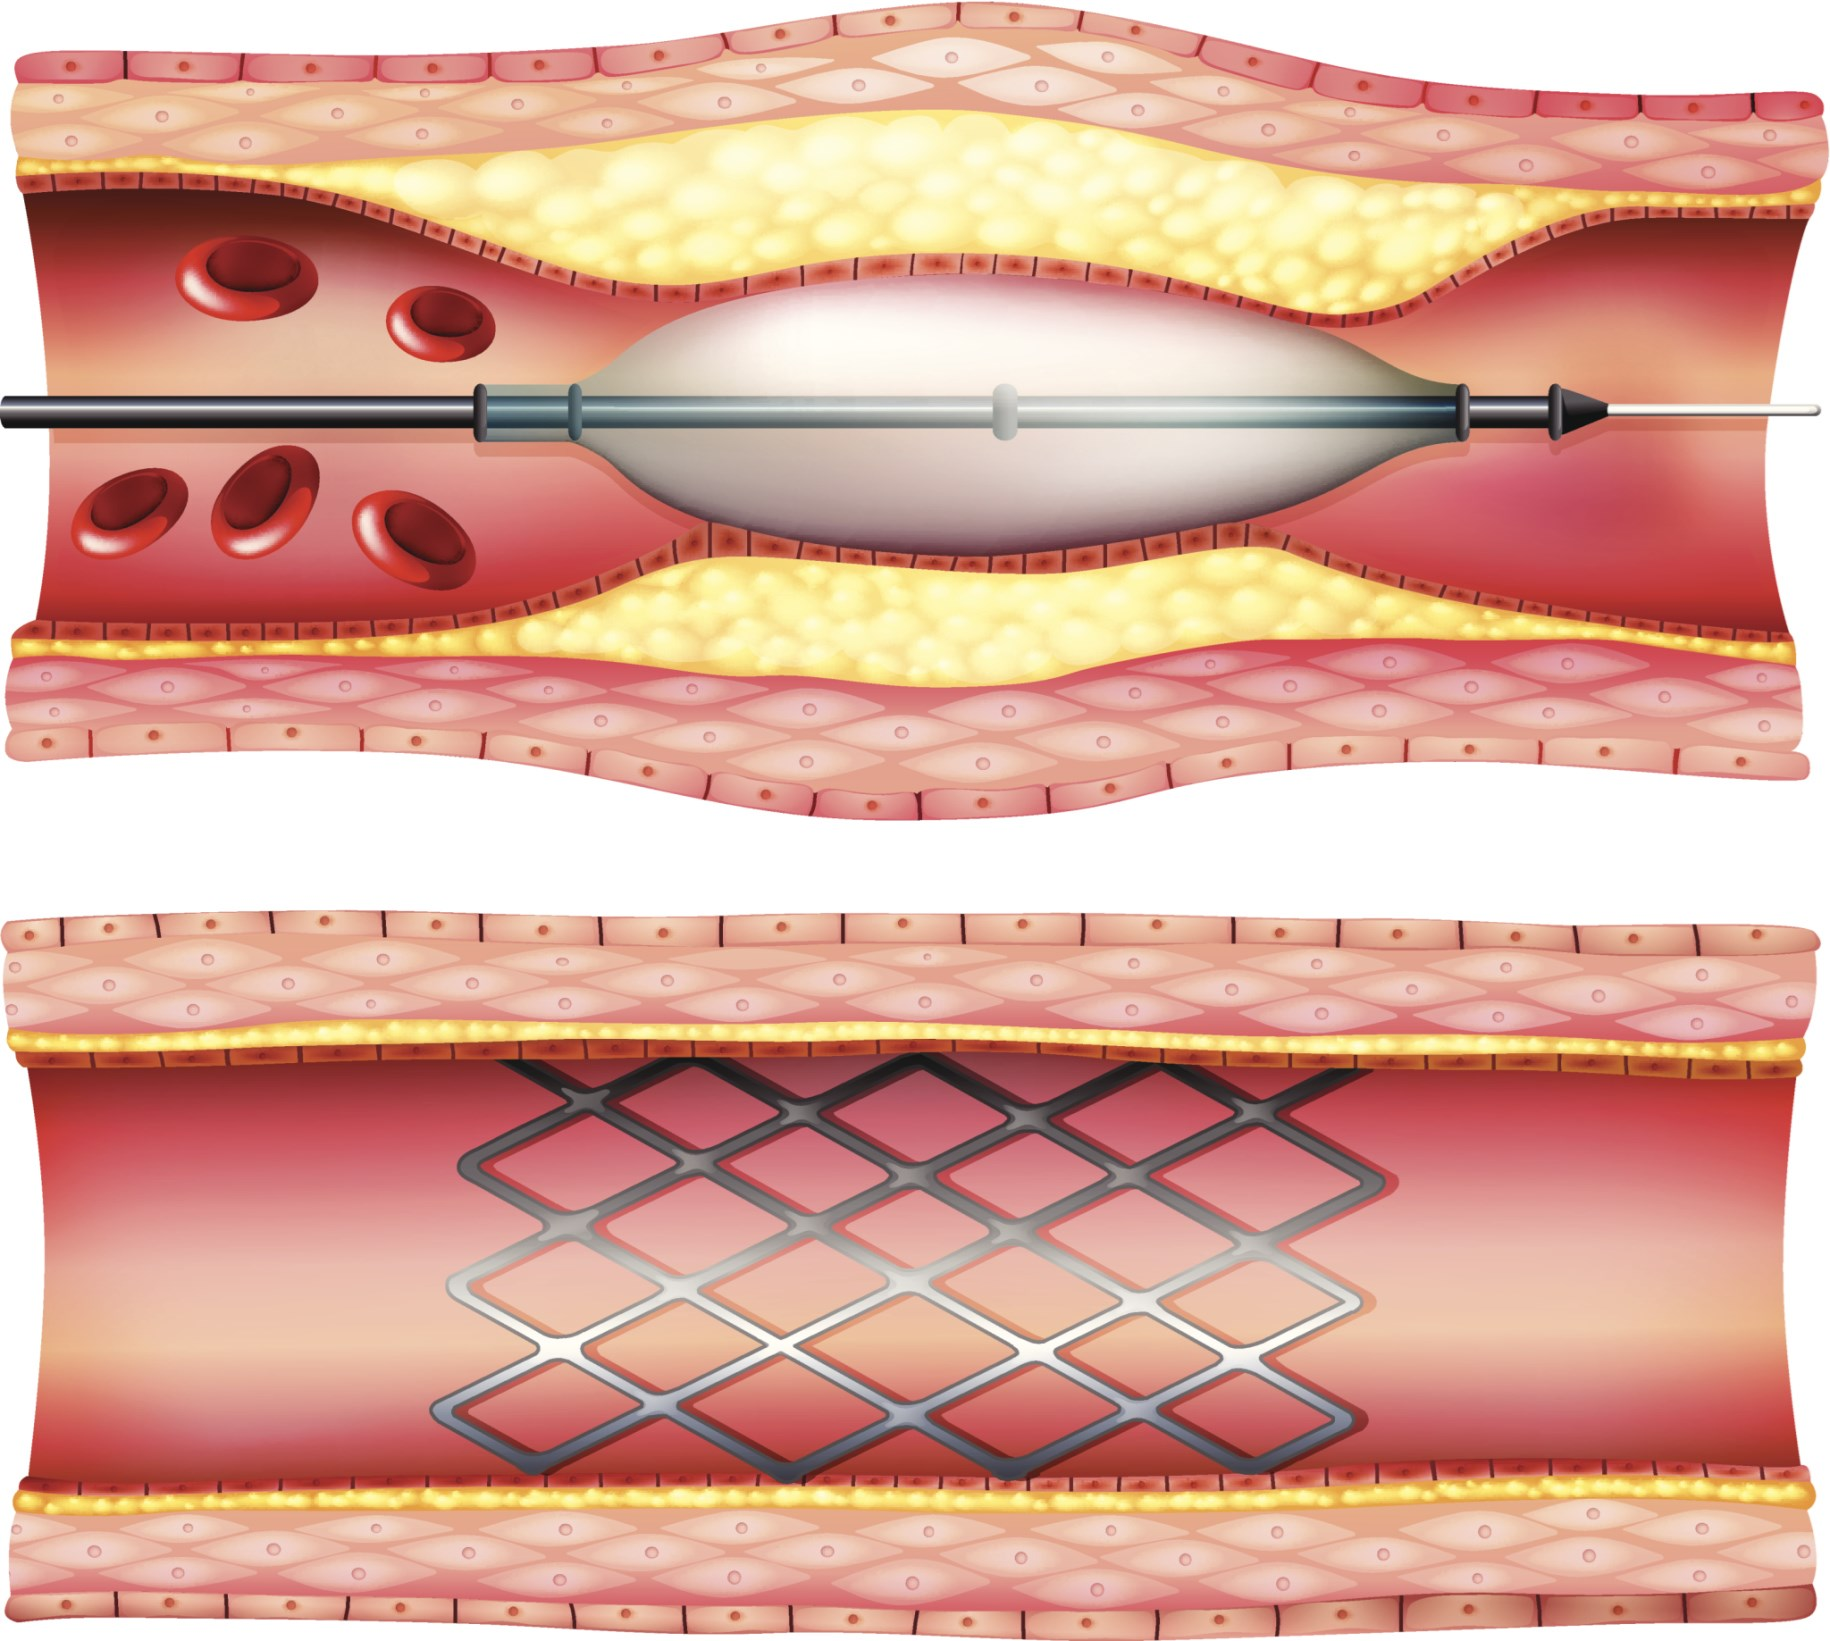 Interventional Cardiology: A Look Back at 4 Decades of Practice-Changing Innovation